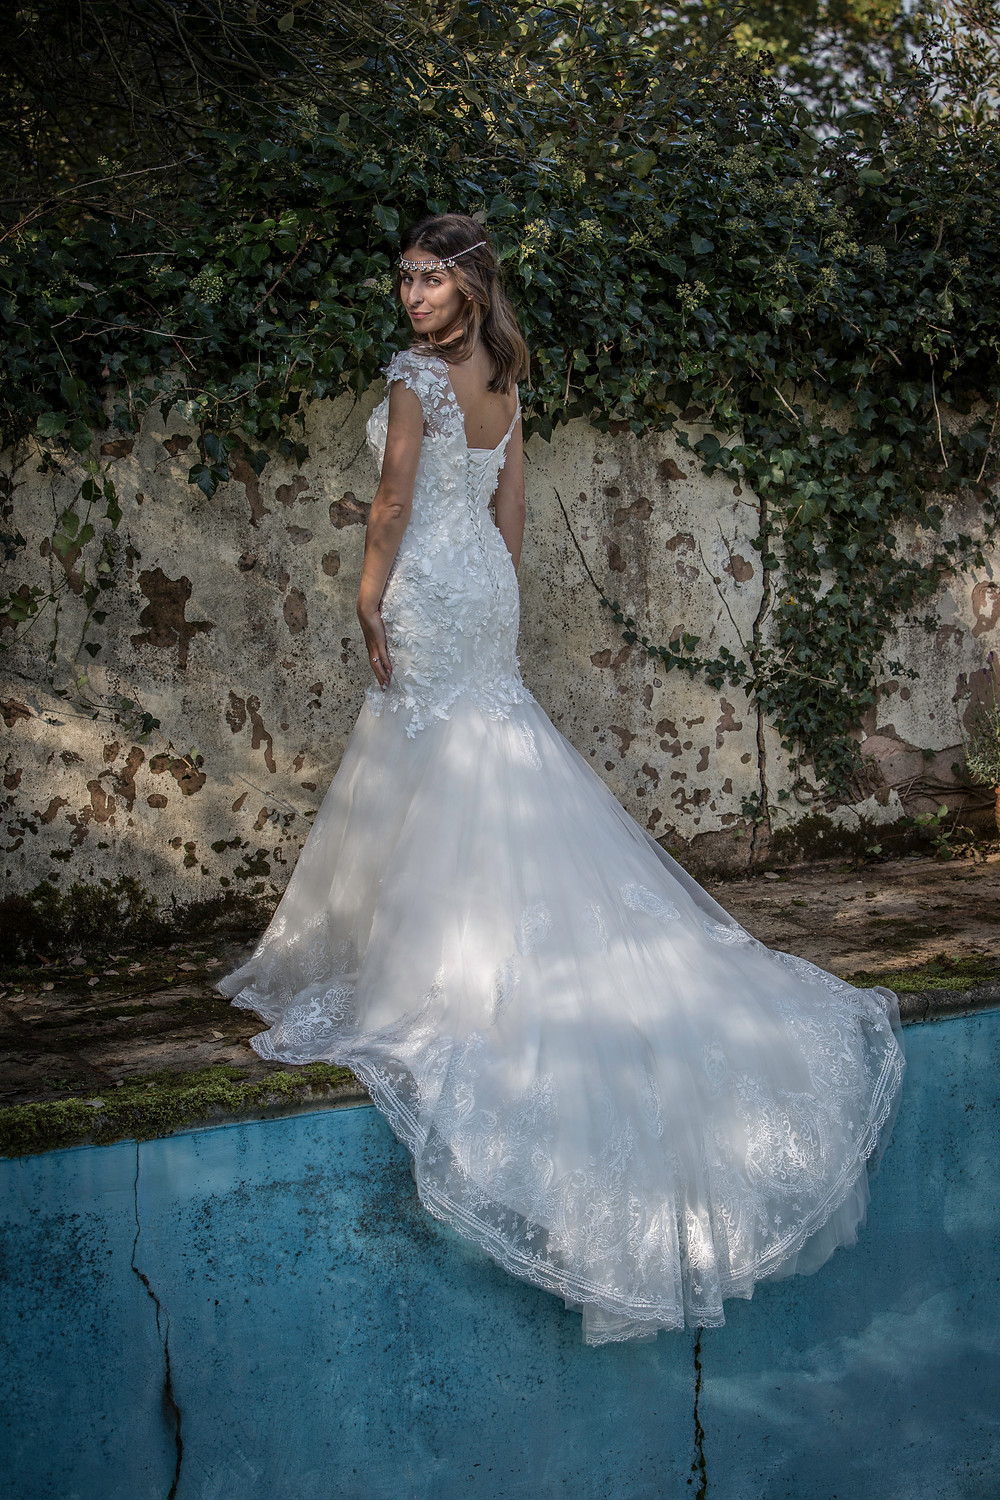 Laced Back Fishtail Wedding Dress by abandoned swimming pool Devon Photoshoot by Taunton Weddings